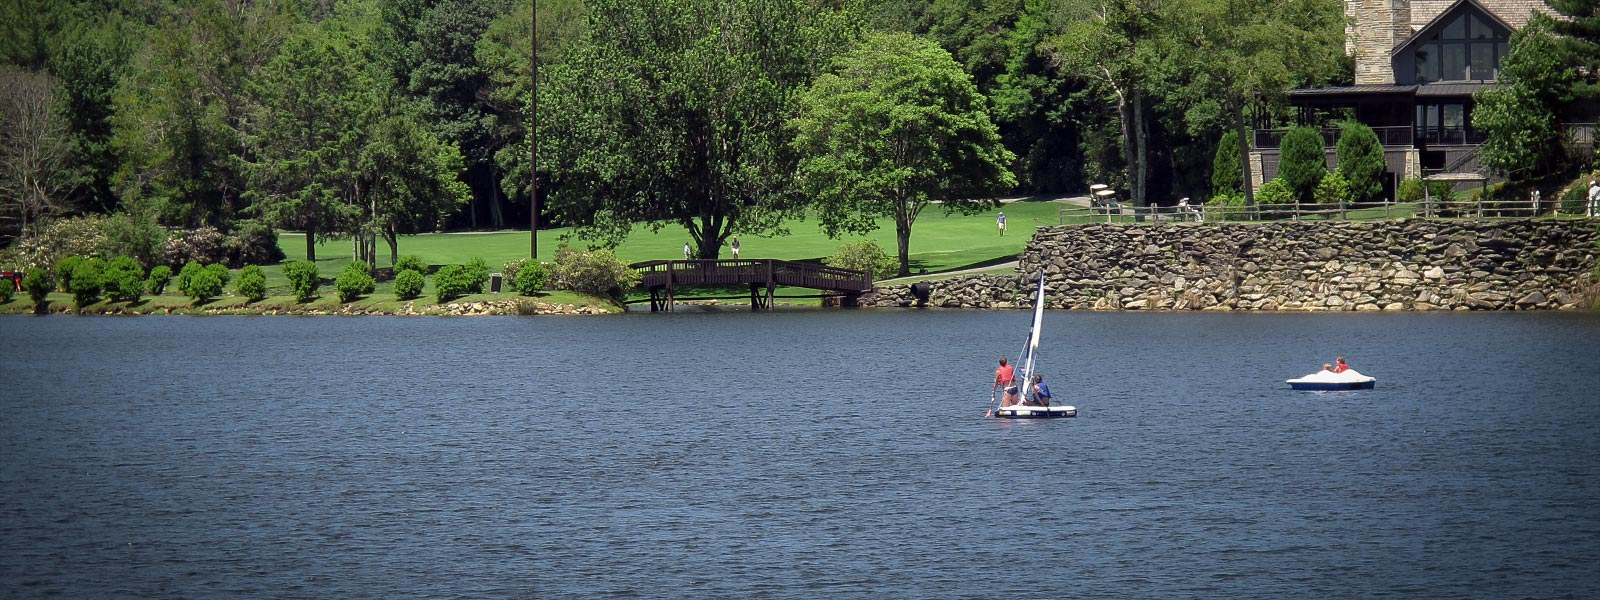 Sailing on Grandfather Lake